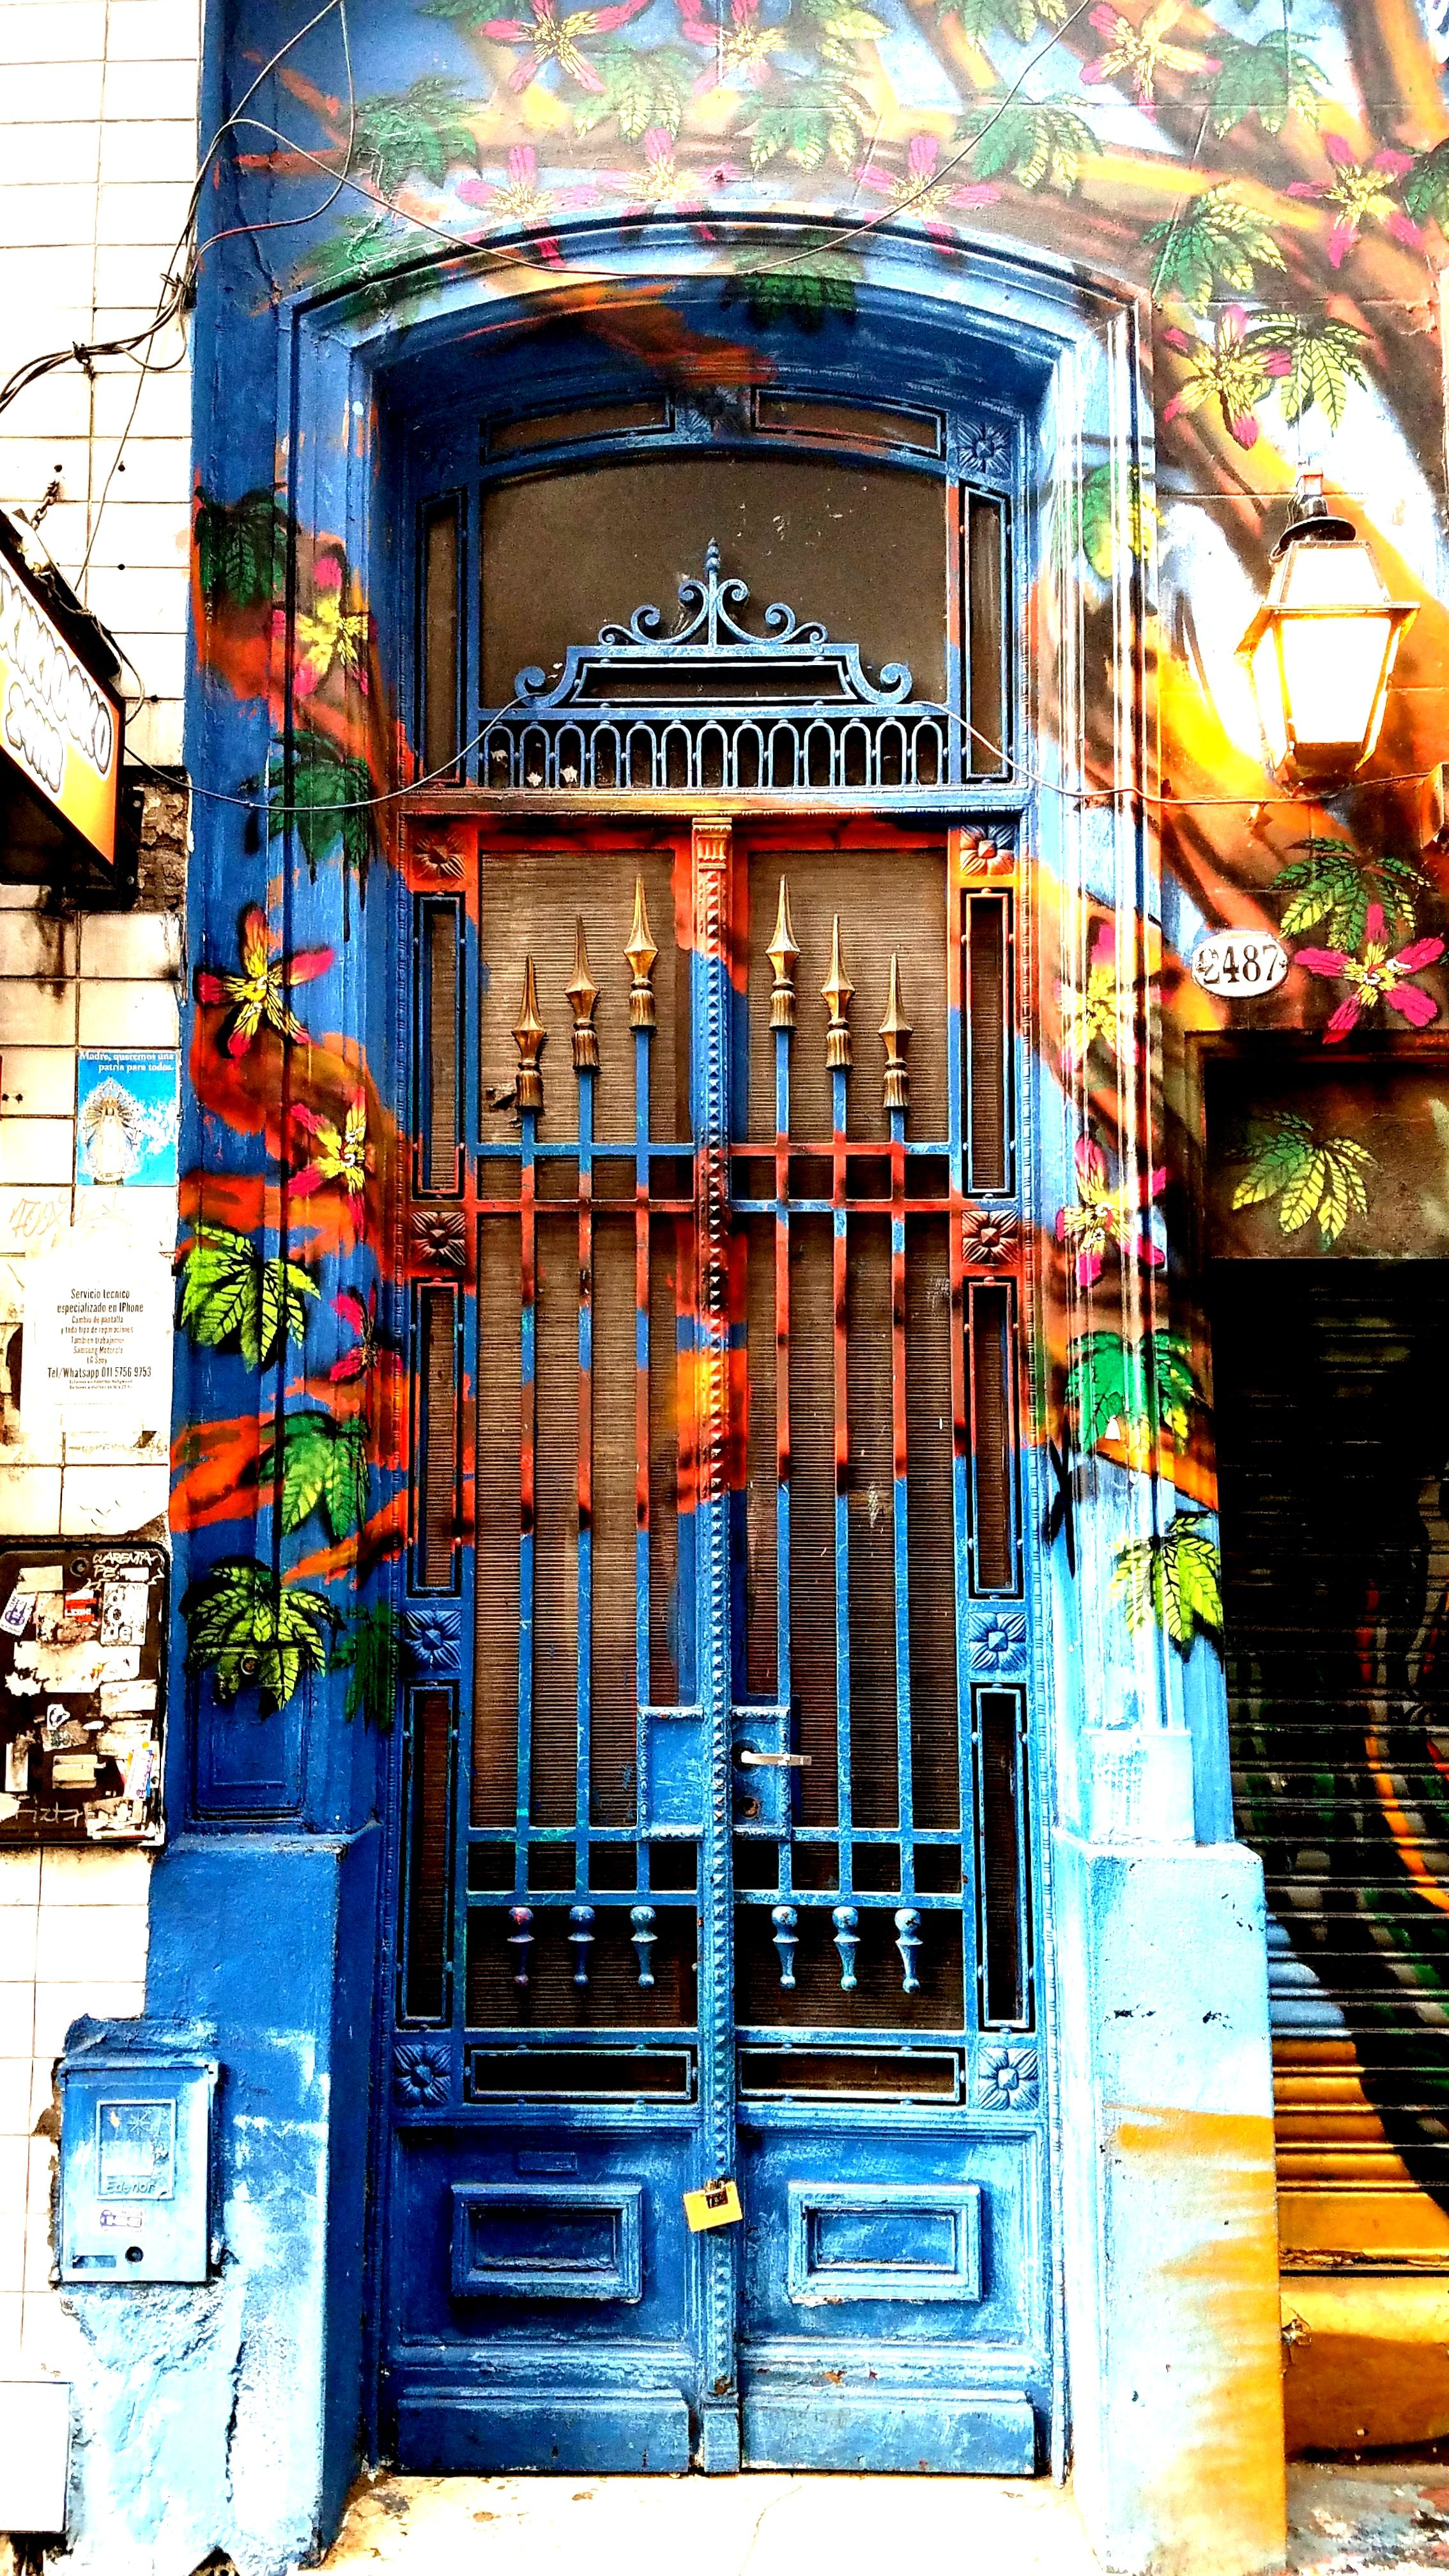 Buenos Aires, Argentina - Street Art & Graffiti (Doors) – This is from